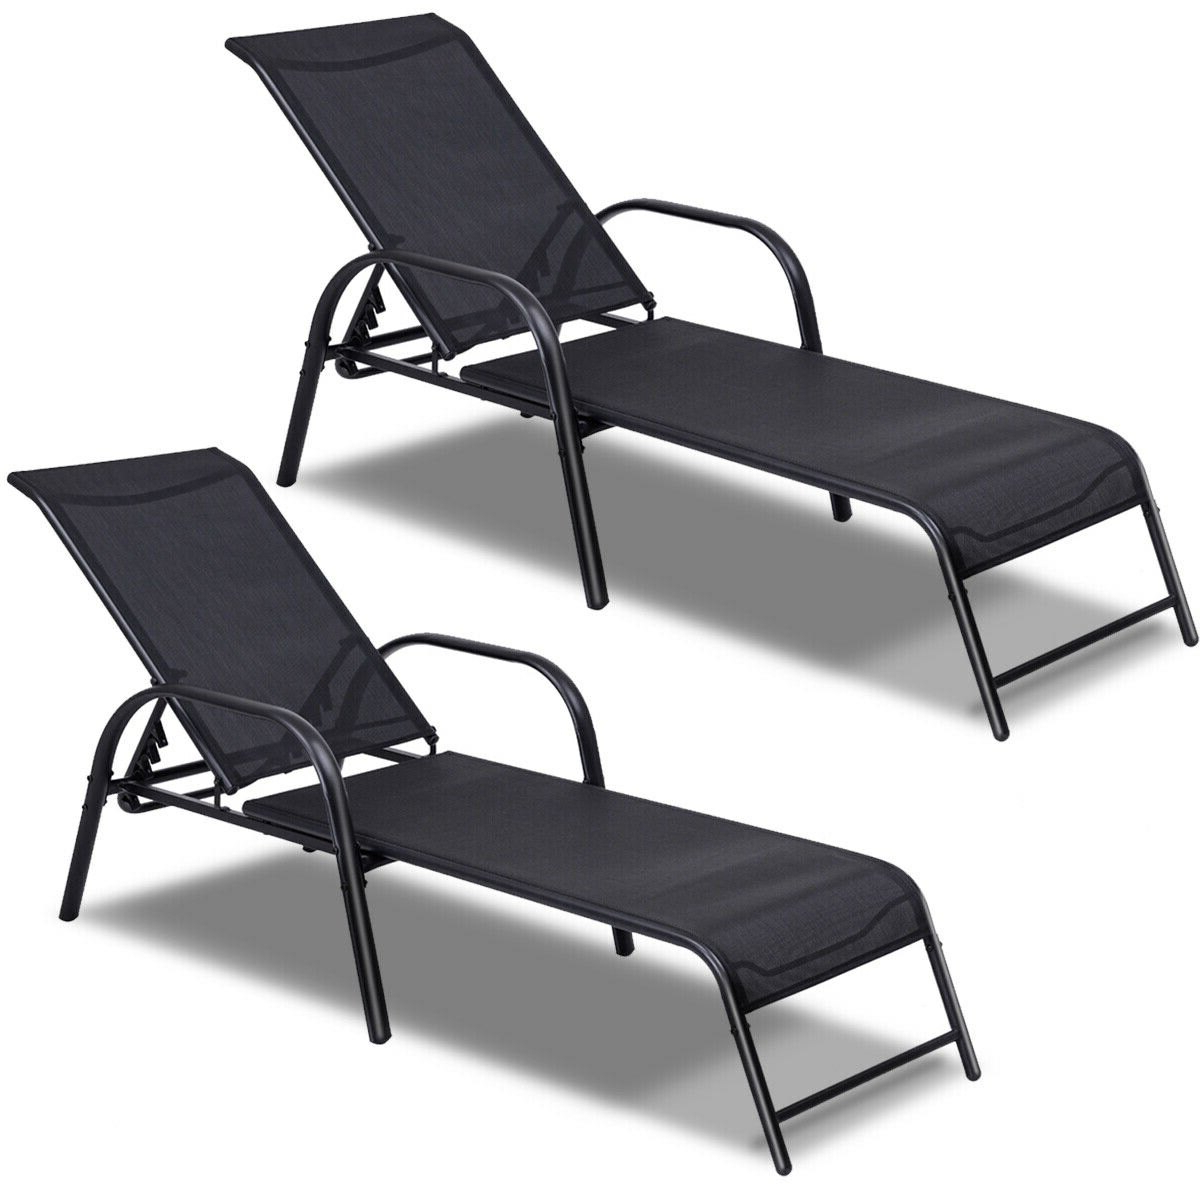 Adjustable Sling Fabric Patio Chaise Lounges For Latest Costway Set Of 2 Patio Lounge Chairs Sling Chaise Lounges Recliner  Adjustable Back (View 1 of 25)